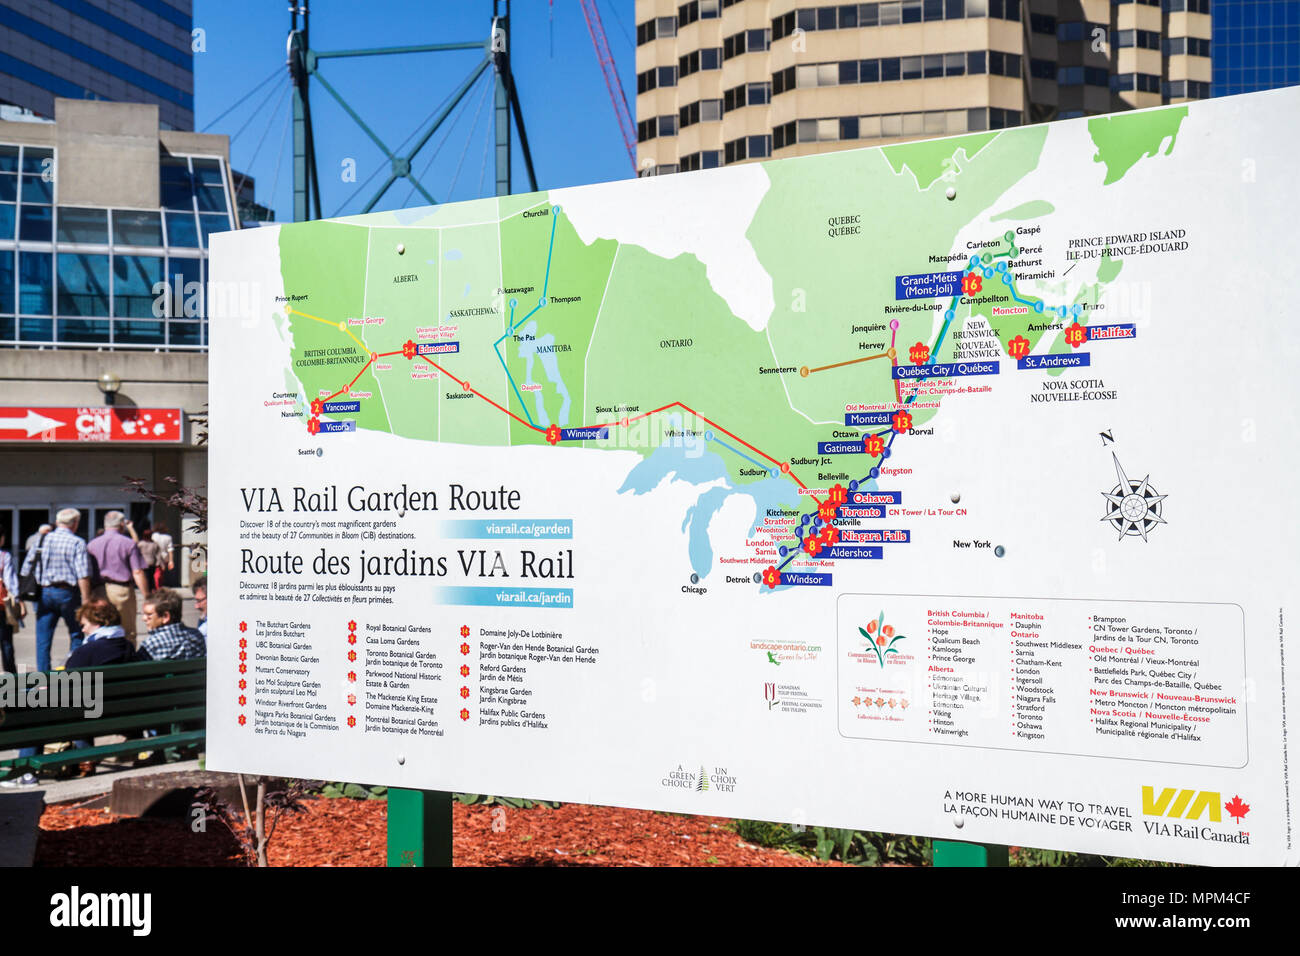 Toronto Canada Ontario Bremner Boulevard Rogers Centre center information sign poster map itinerary information marketing VIA Ra - Stock Image